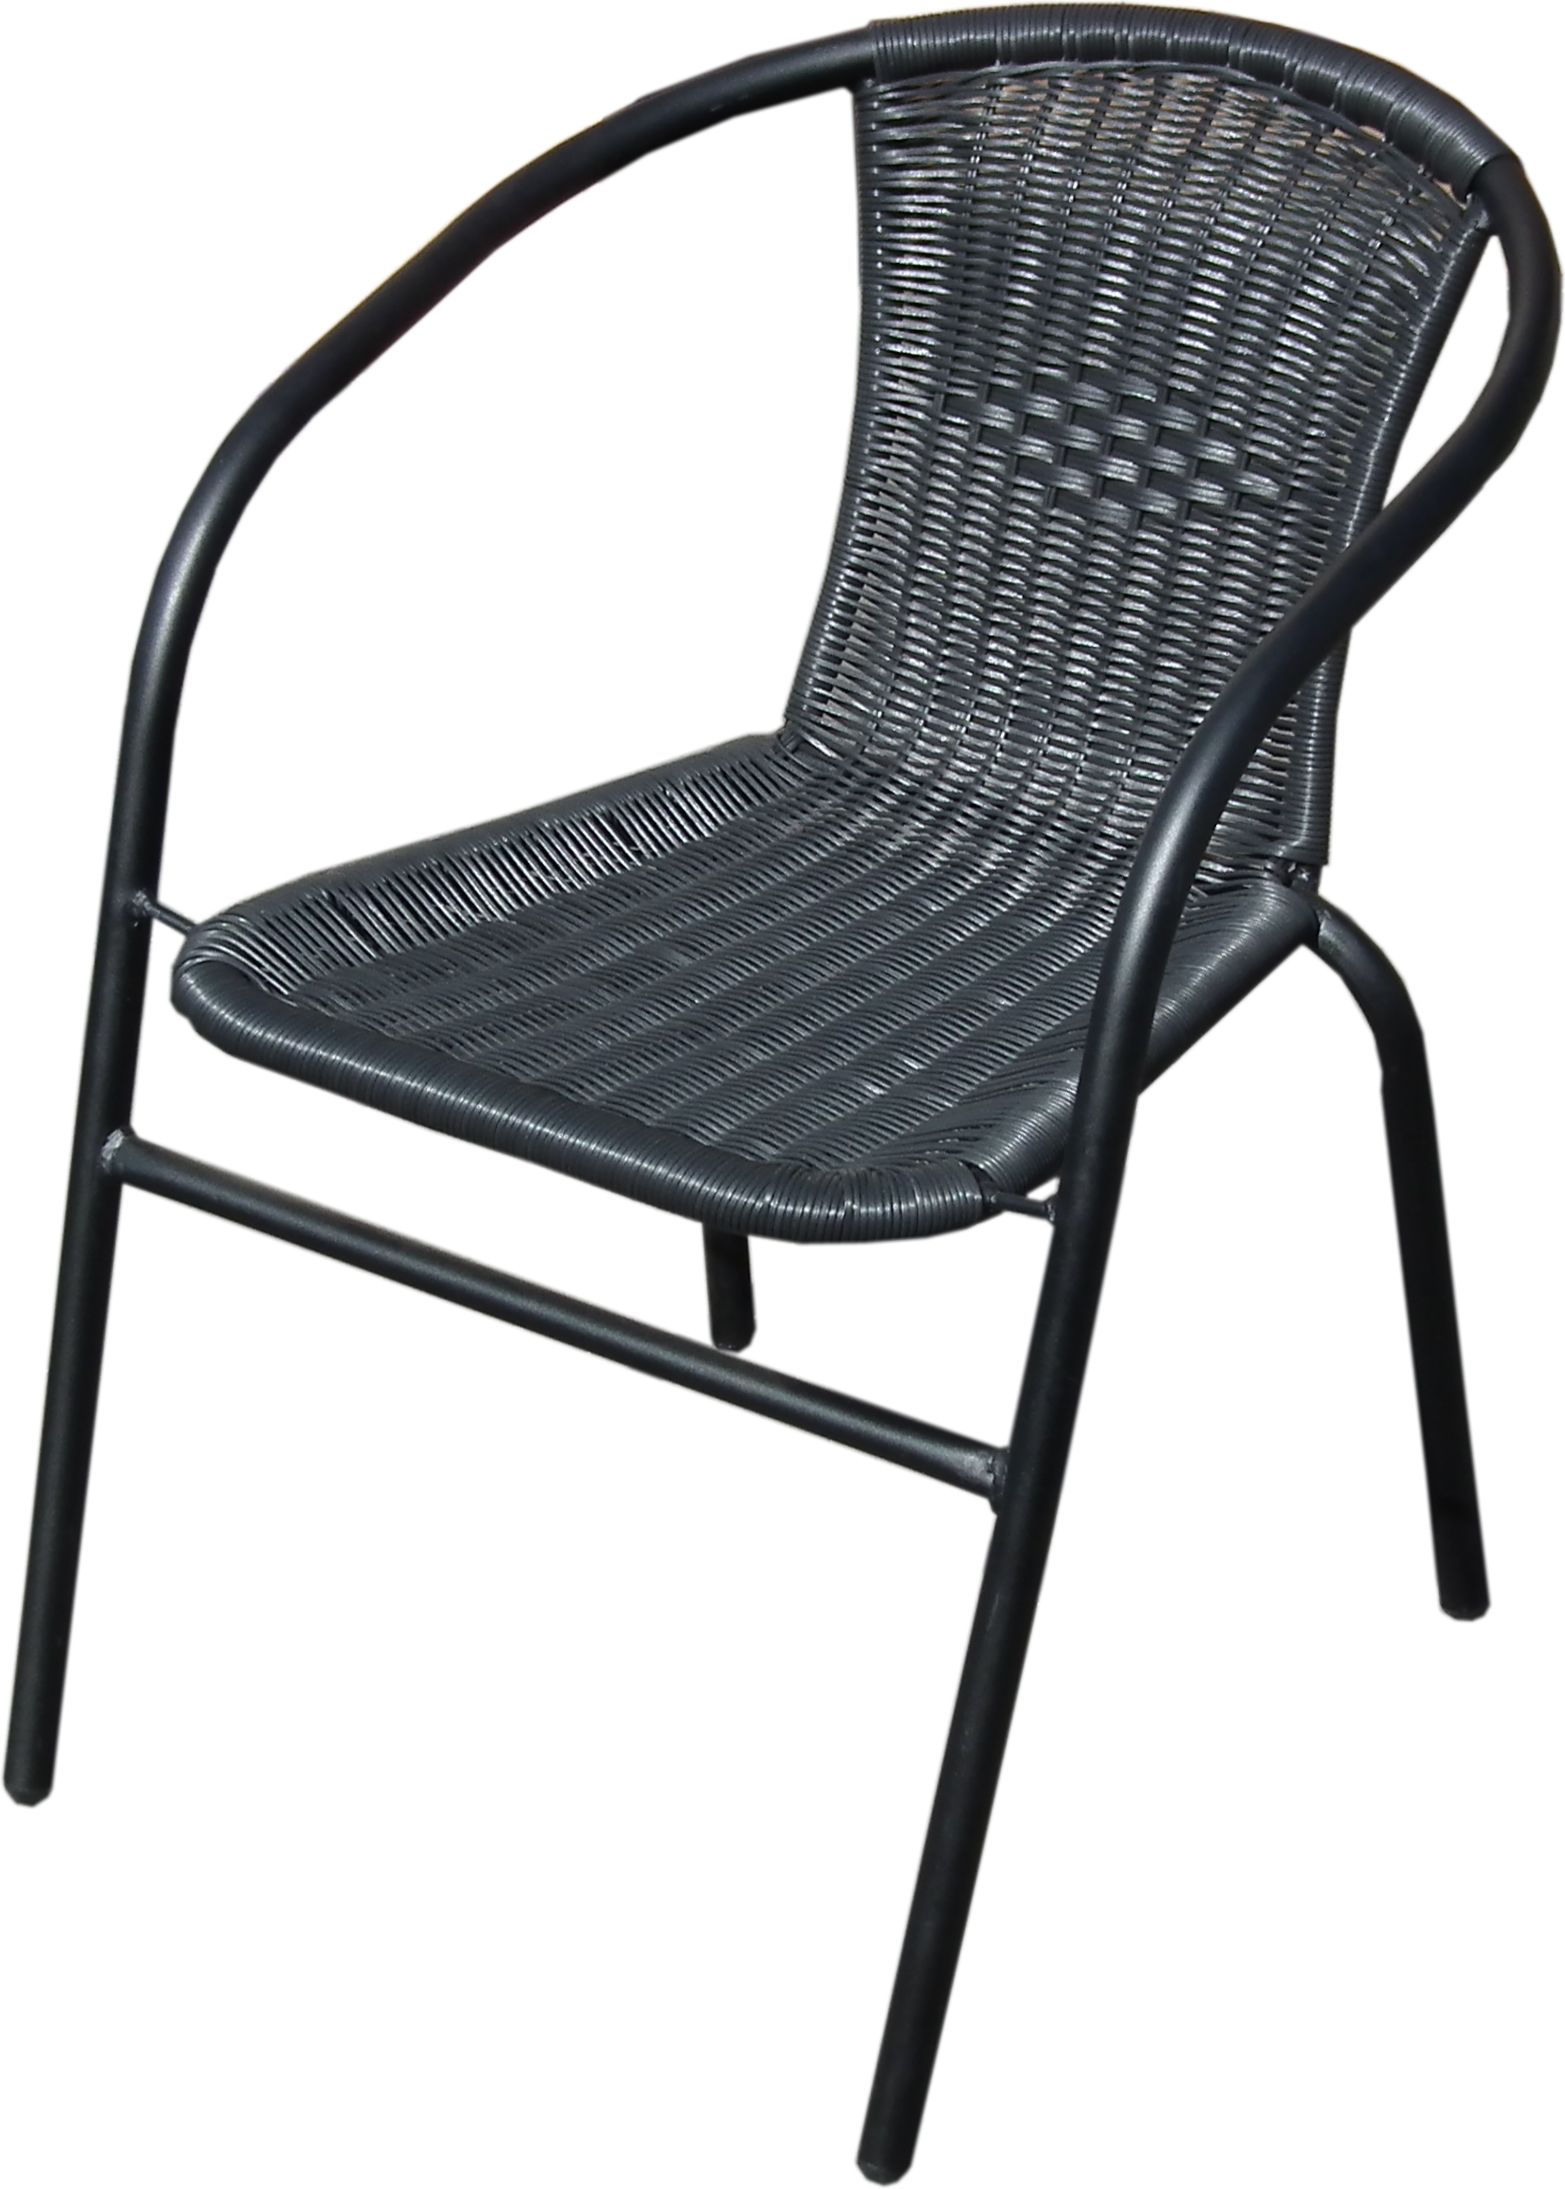 Black Rattan Sofa Uk Black Outdoor Wicker Rattan Bistro Chair Metal Frame Woven